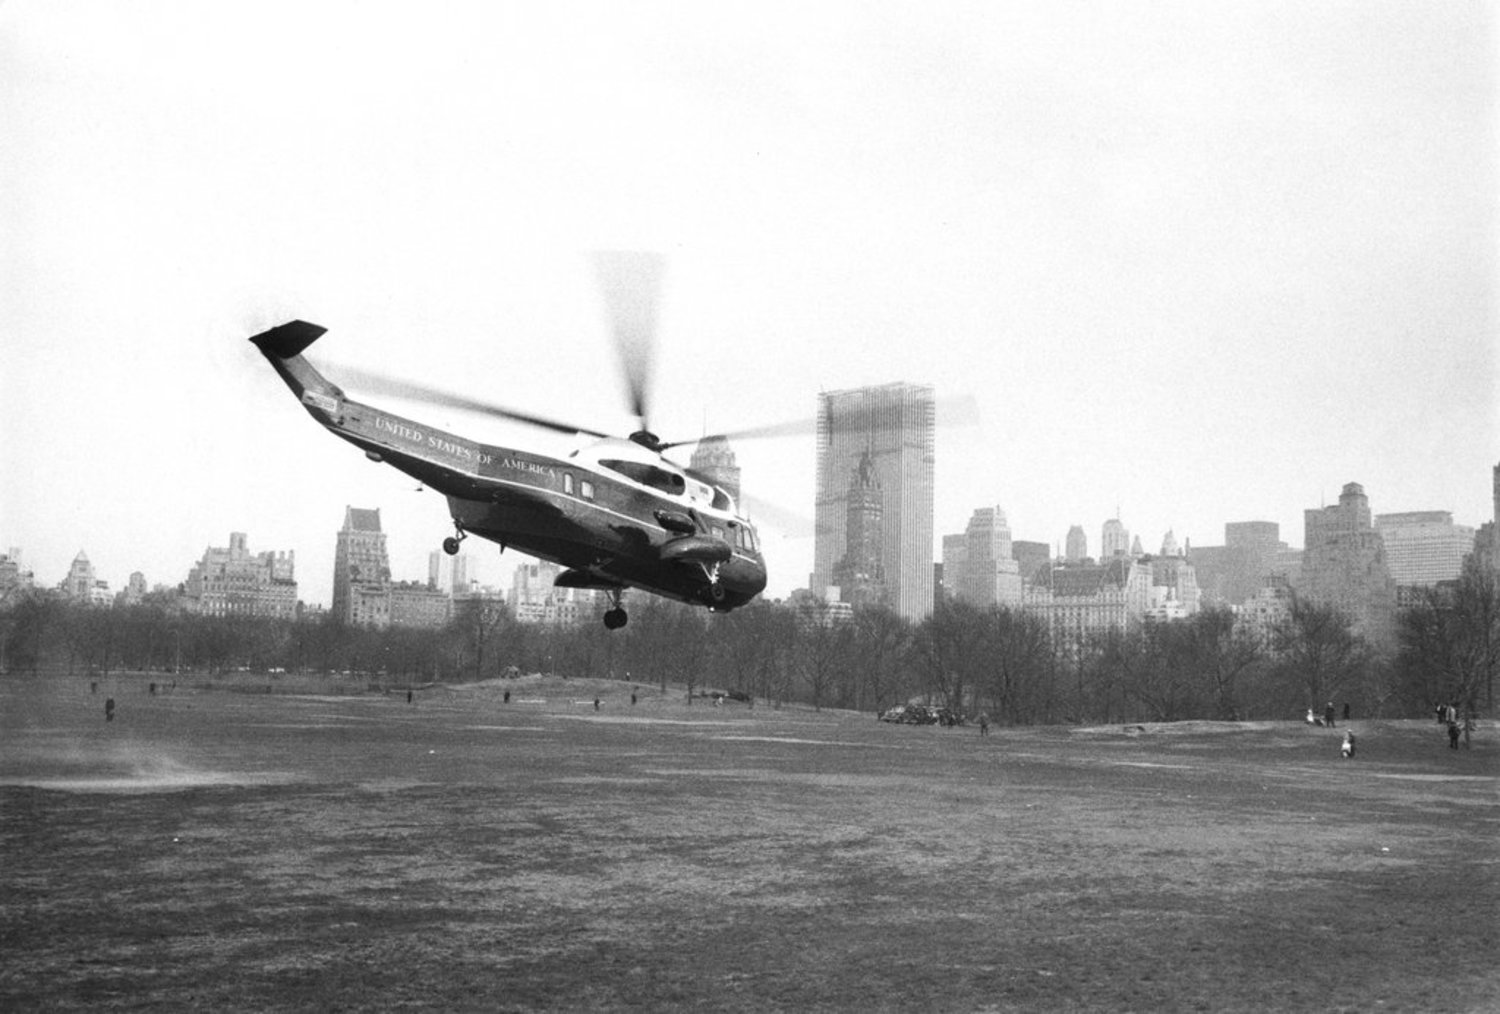 "April 4, 1968: The presidential helicopter left Sheep Meadow in Central Park after a sudden surprise visit to attend the ceremonies installing Archbishop Terence J. Cooke at St. Patrick's Cathedral. ""Until last week,"" said one girl in the crowd watching across the street from the cathedral, ""I would have booed the President. But I'm confused about what's happened in the last few days. I don't know what it all means."" Presumably, she was referring to President Johnson's recent decision not to run to retain office. Later that night, Martin Luther King Jr. was assassinated."""